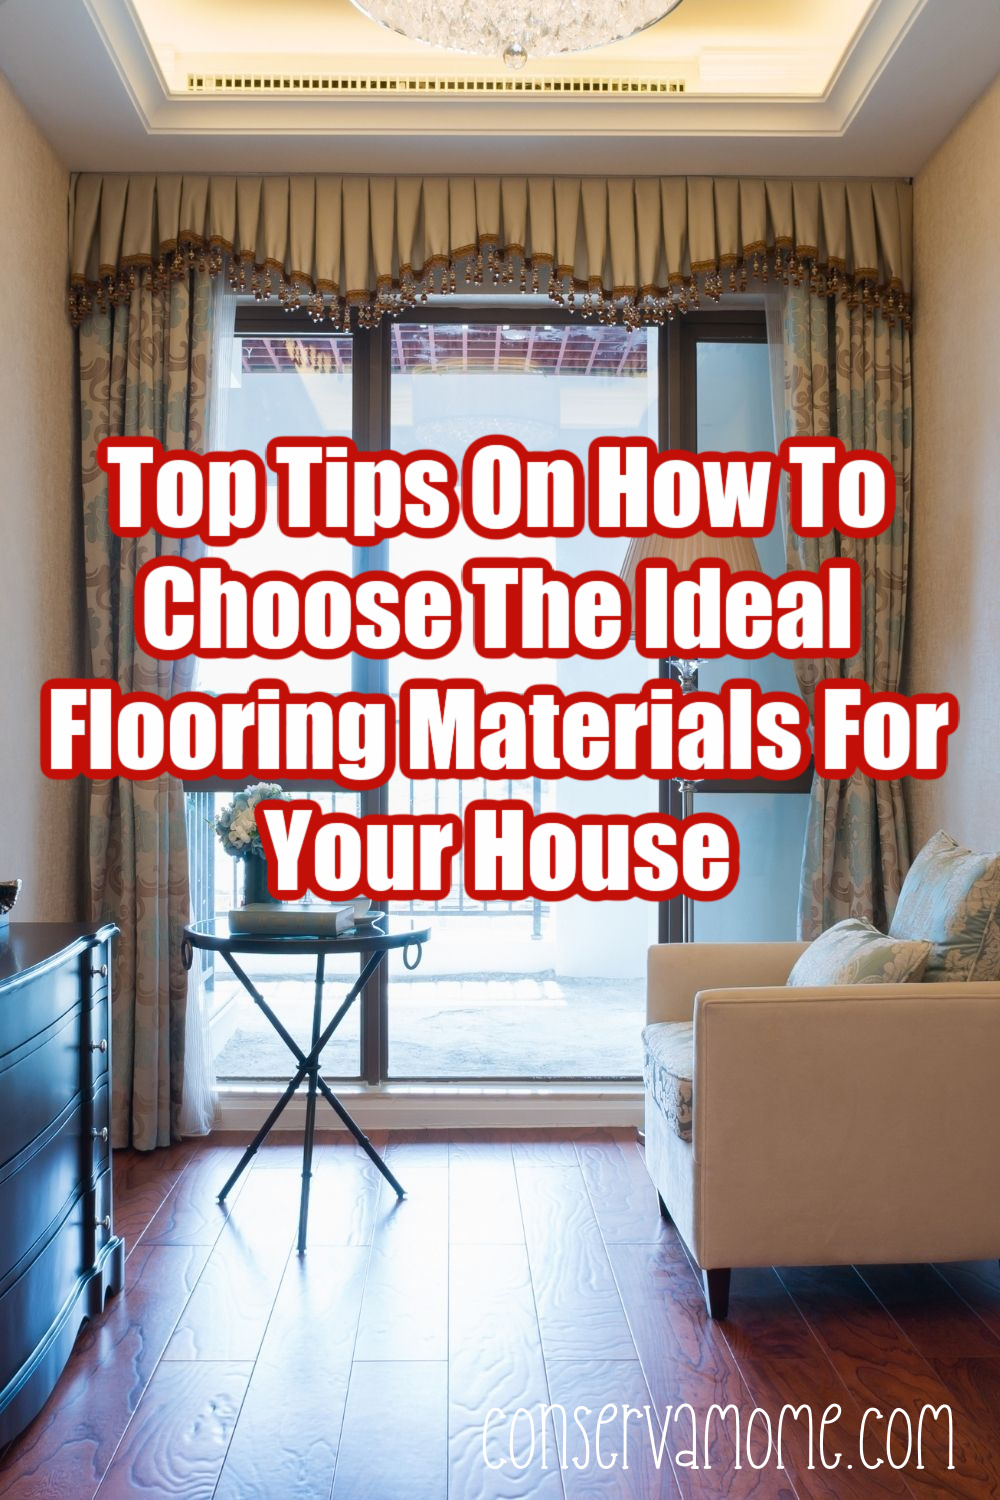 Top Tips on how to choose the ideal flooring materials for your house.